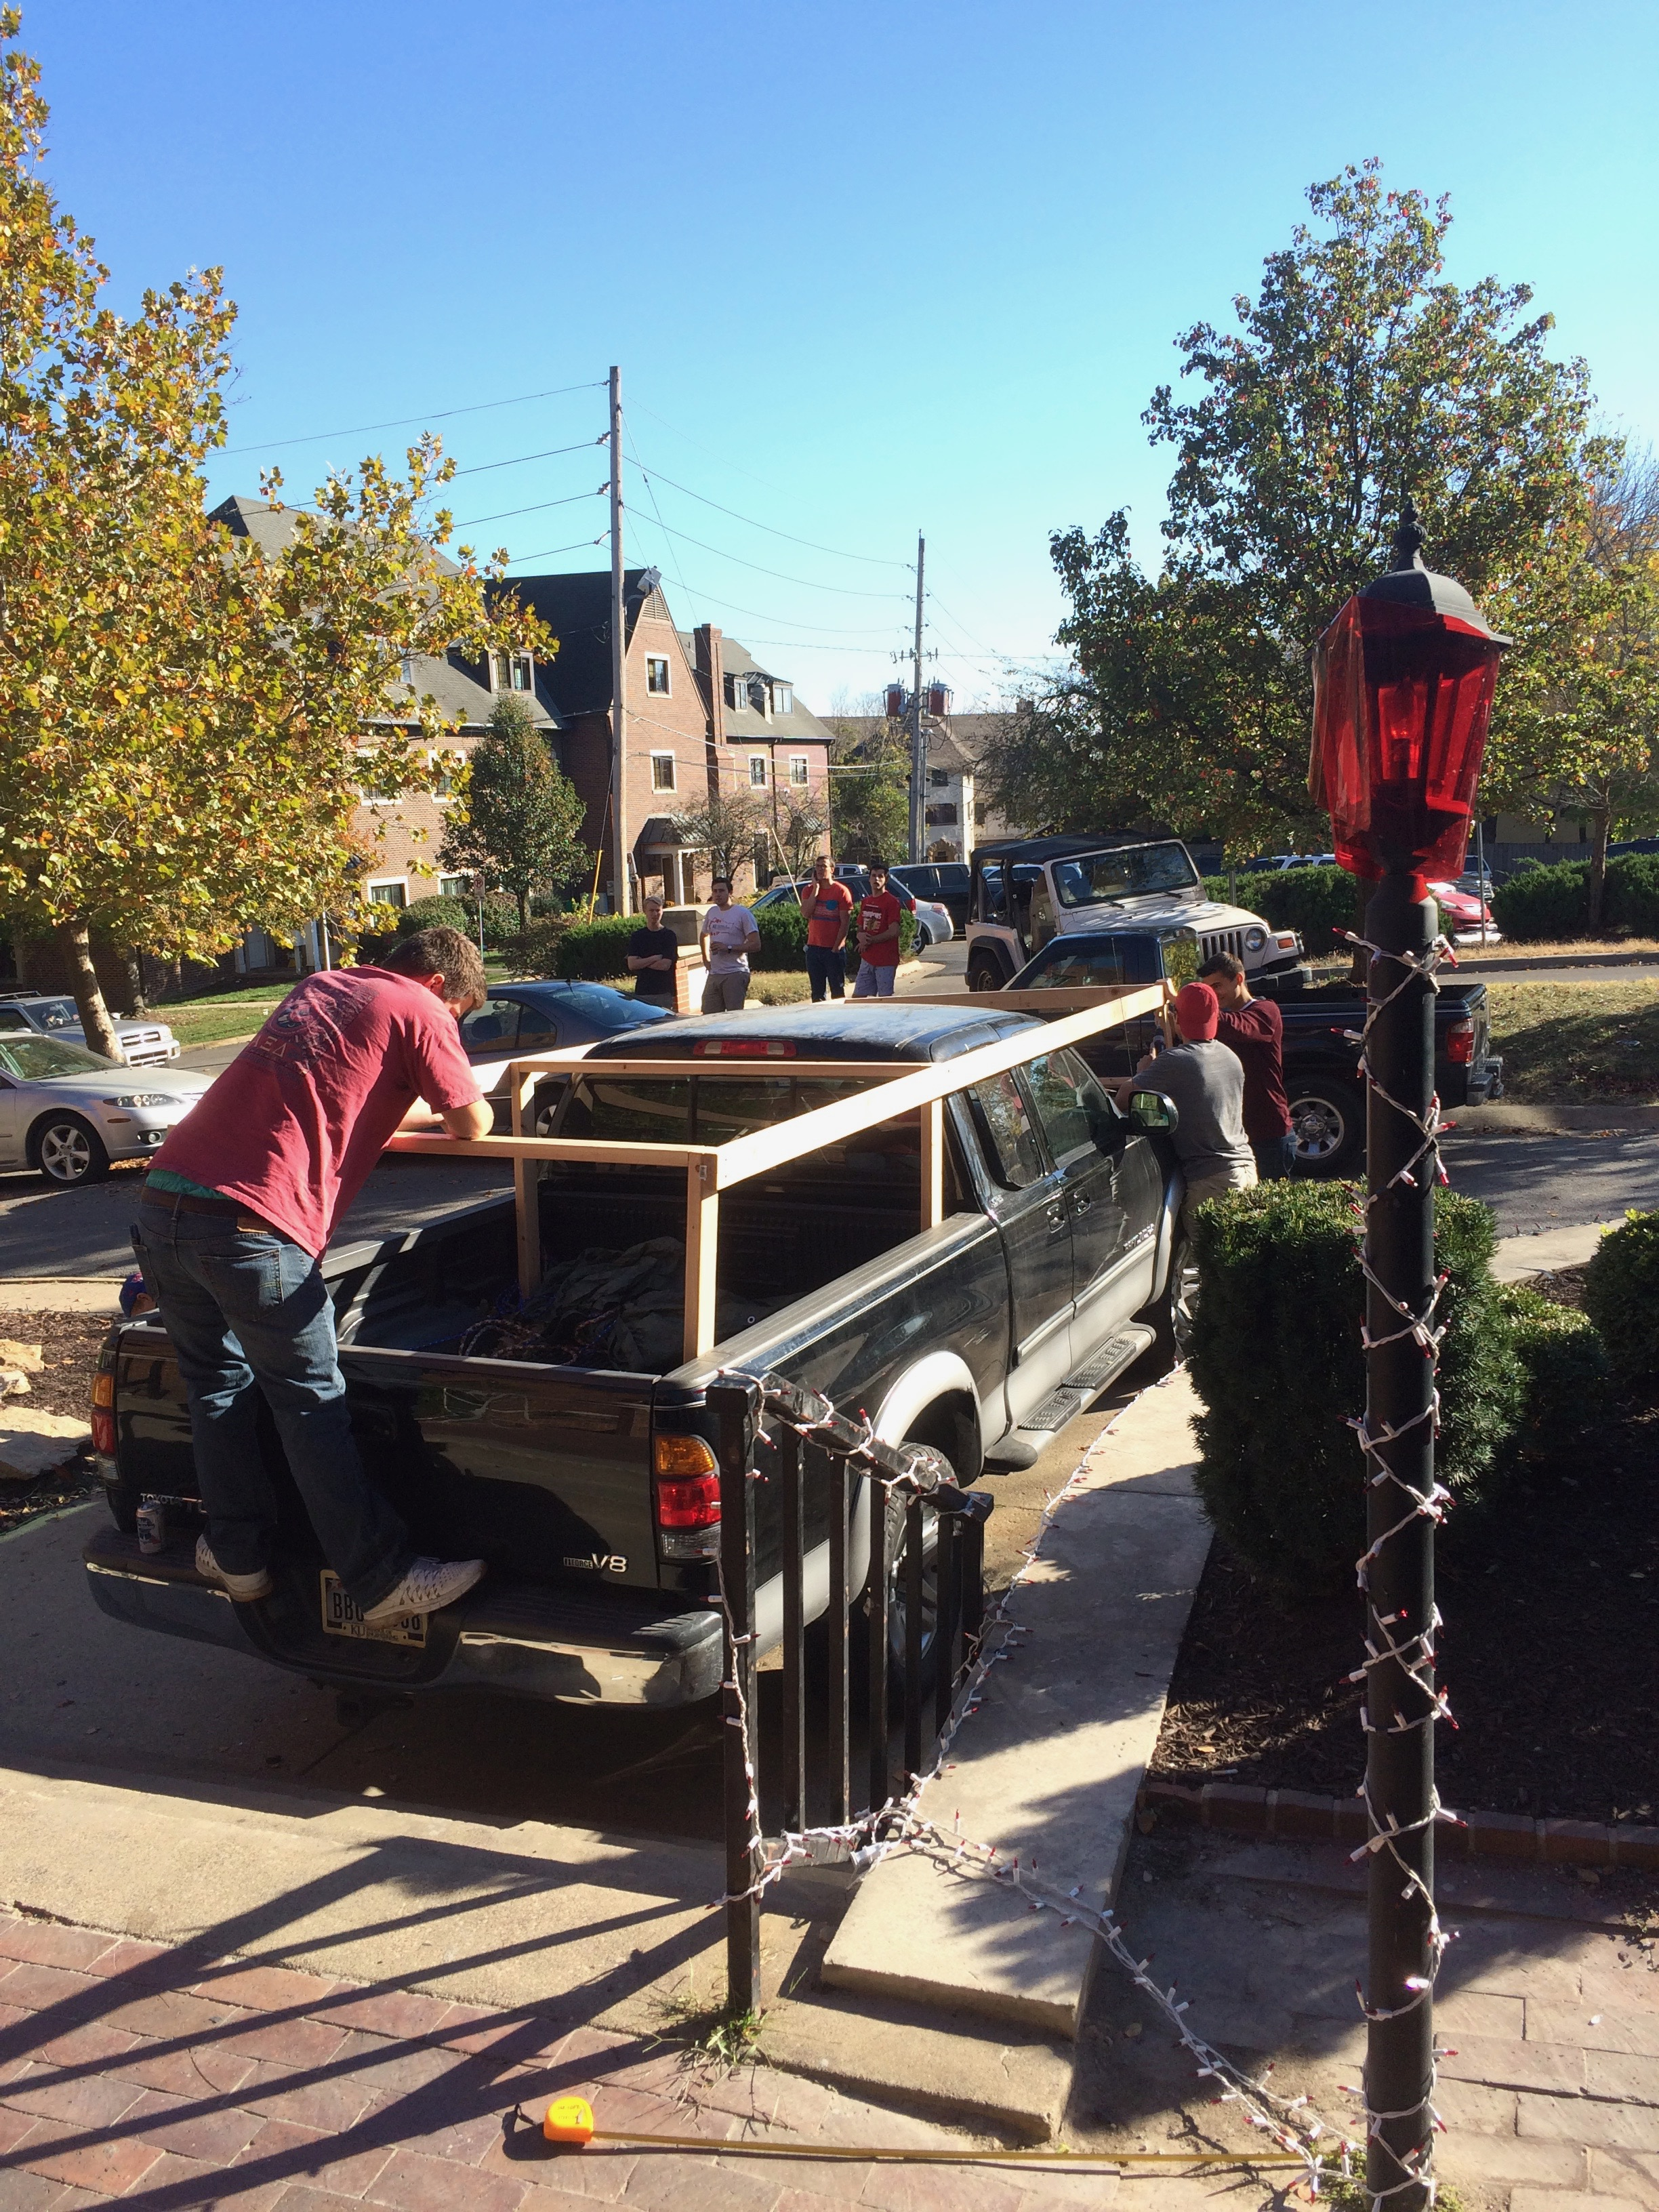 Rigging up the Homecoming Float